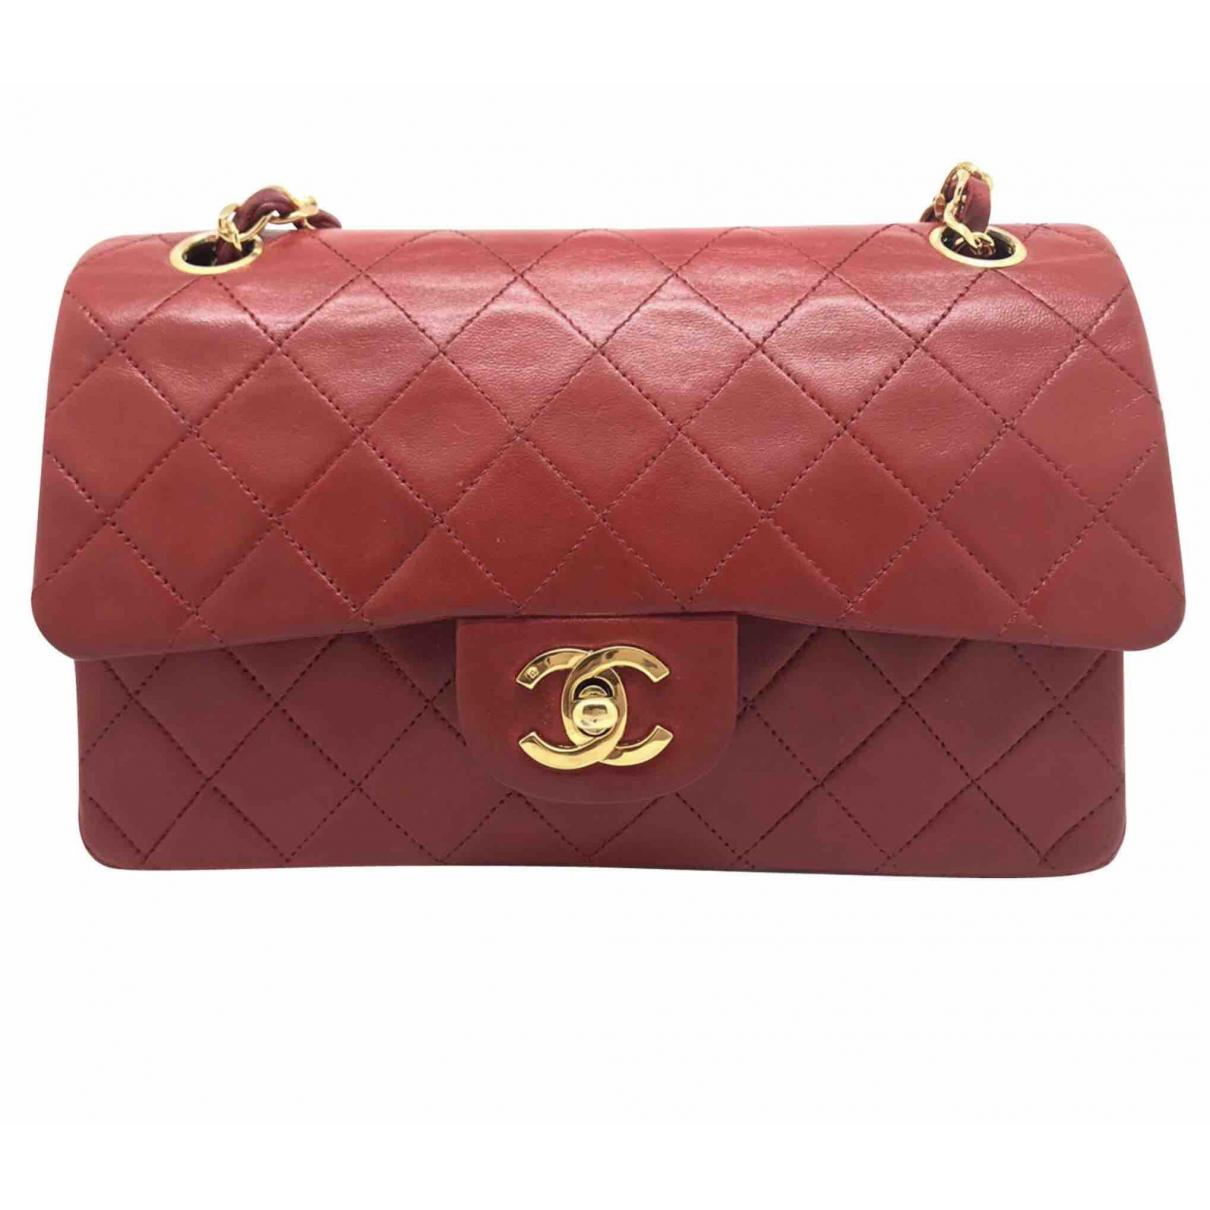 Chanel Women S Pre Owned Vintage Timeless Red Leather Handbag